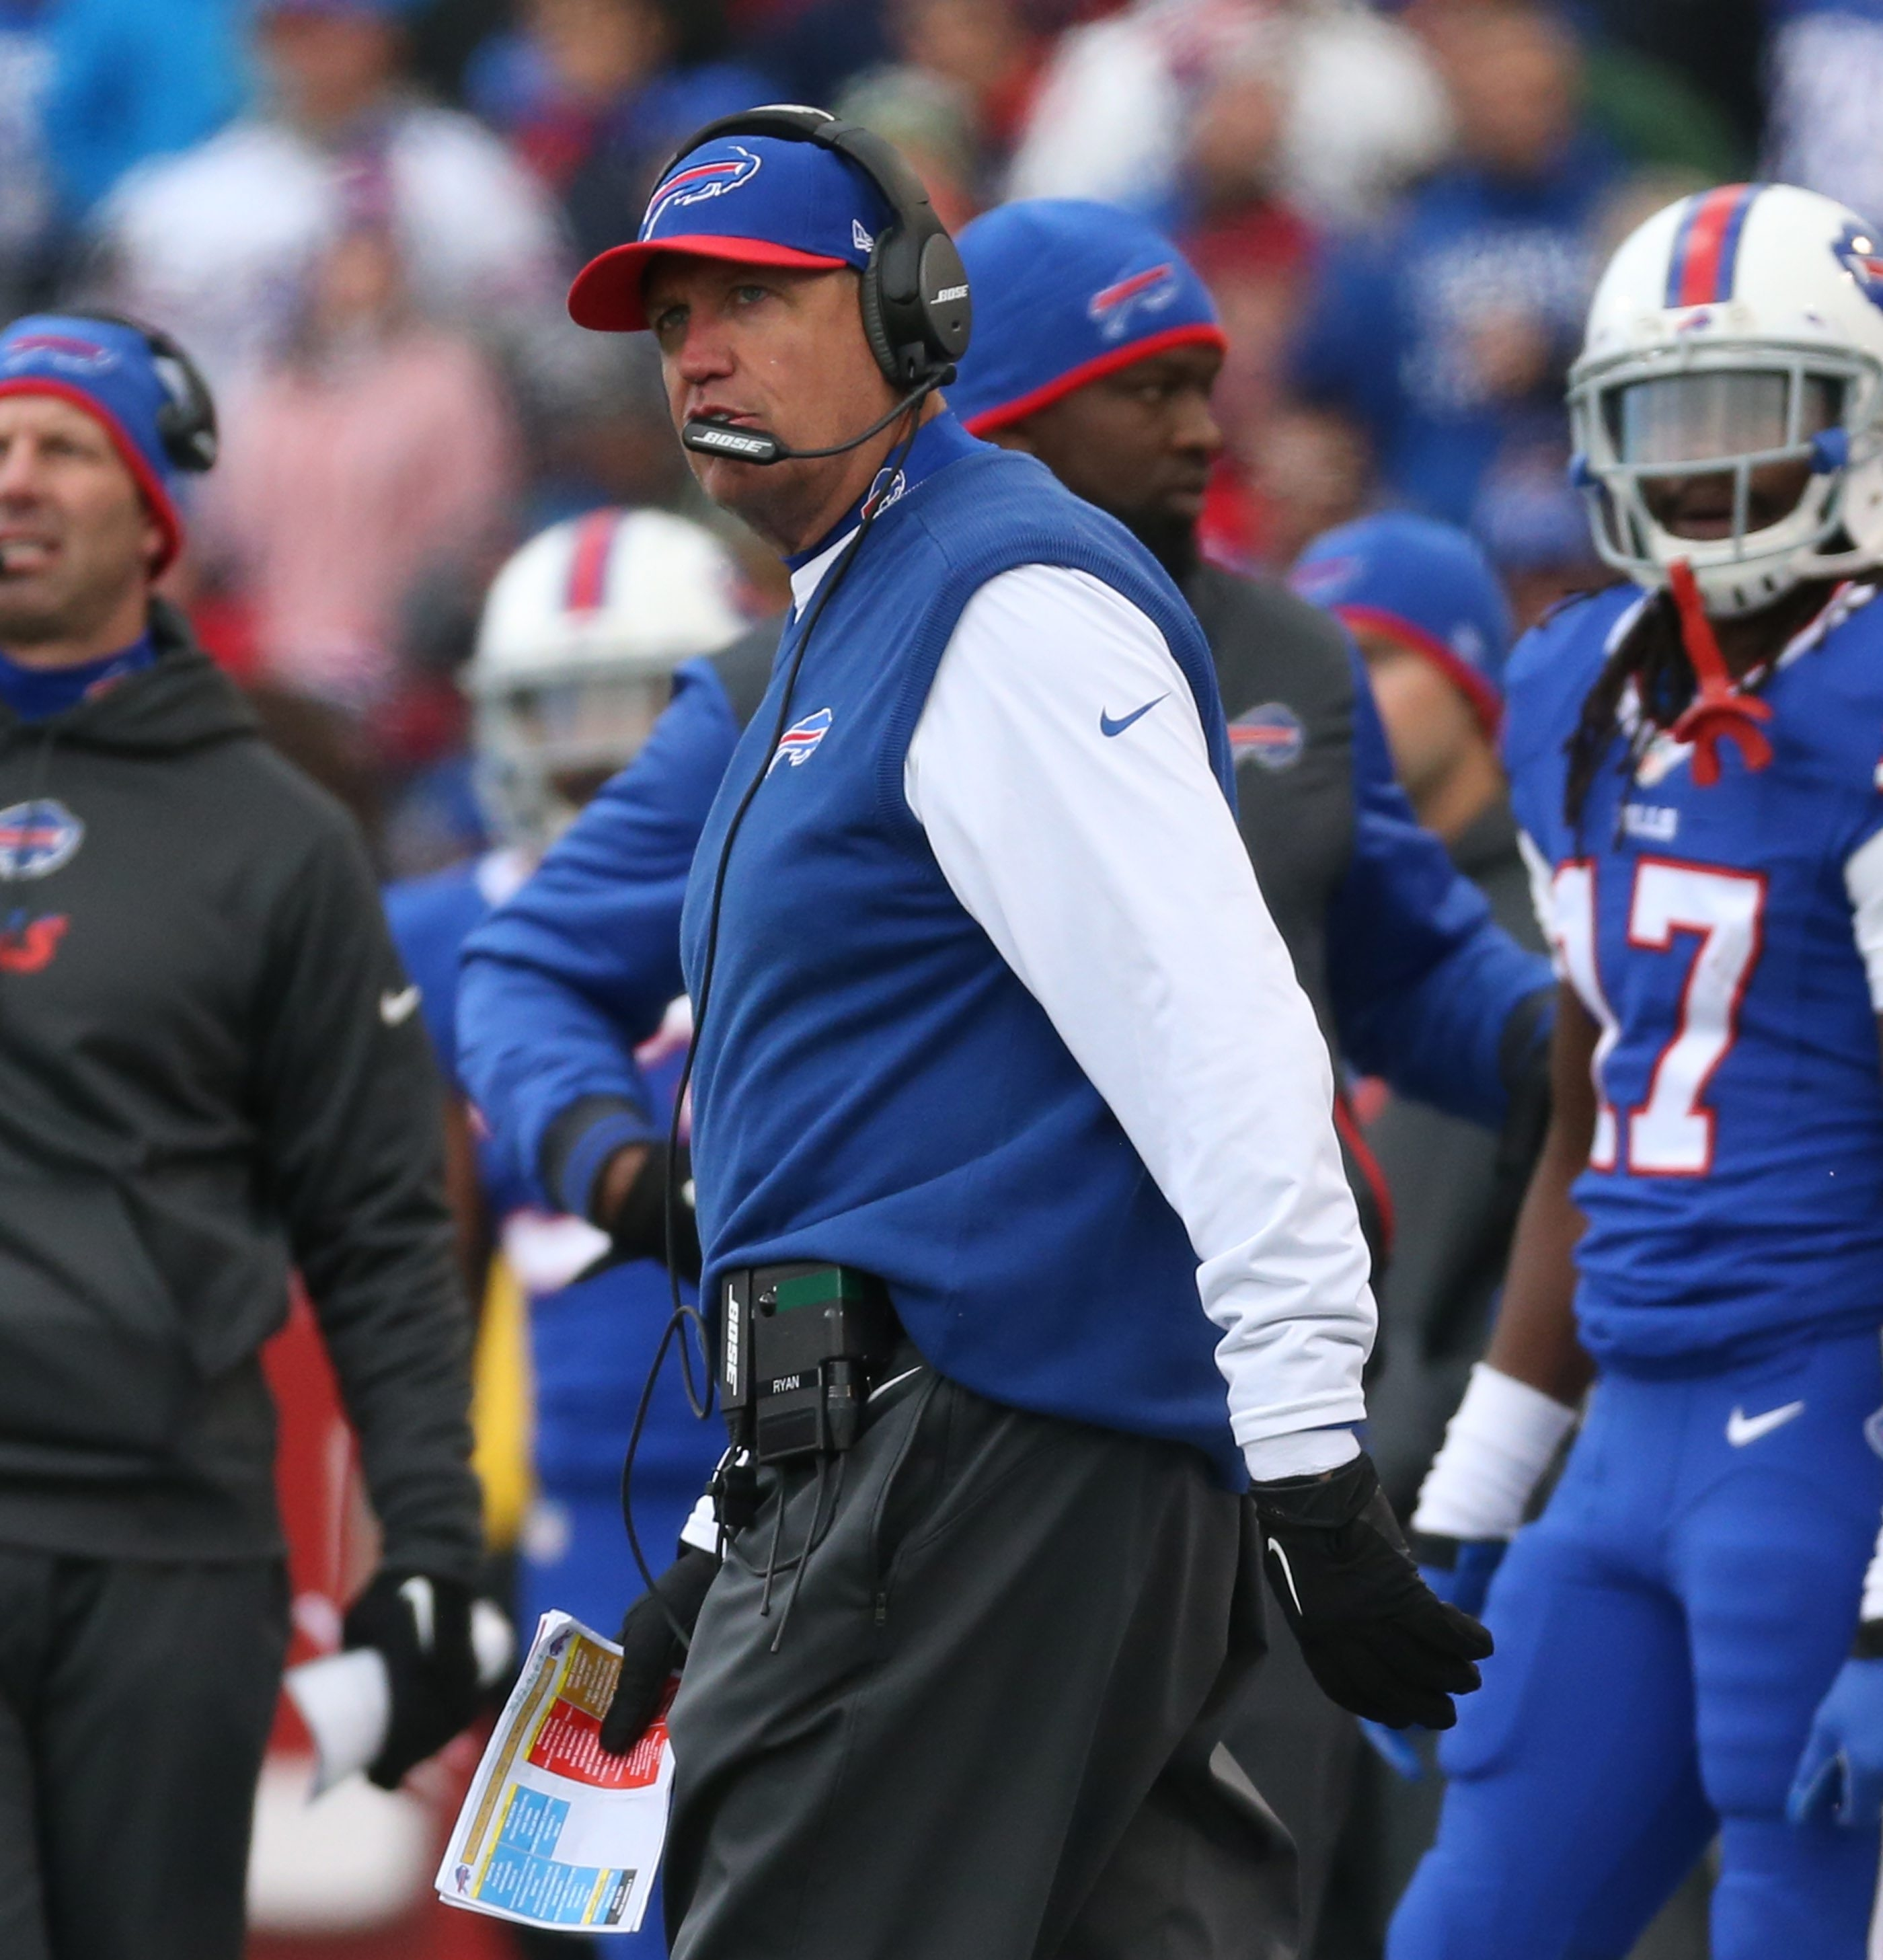 Rex Ryan's unfulfilled promises have turned off some Bills fans while others cite circumstances.